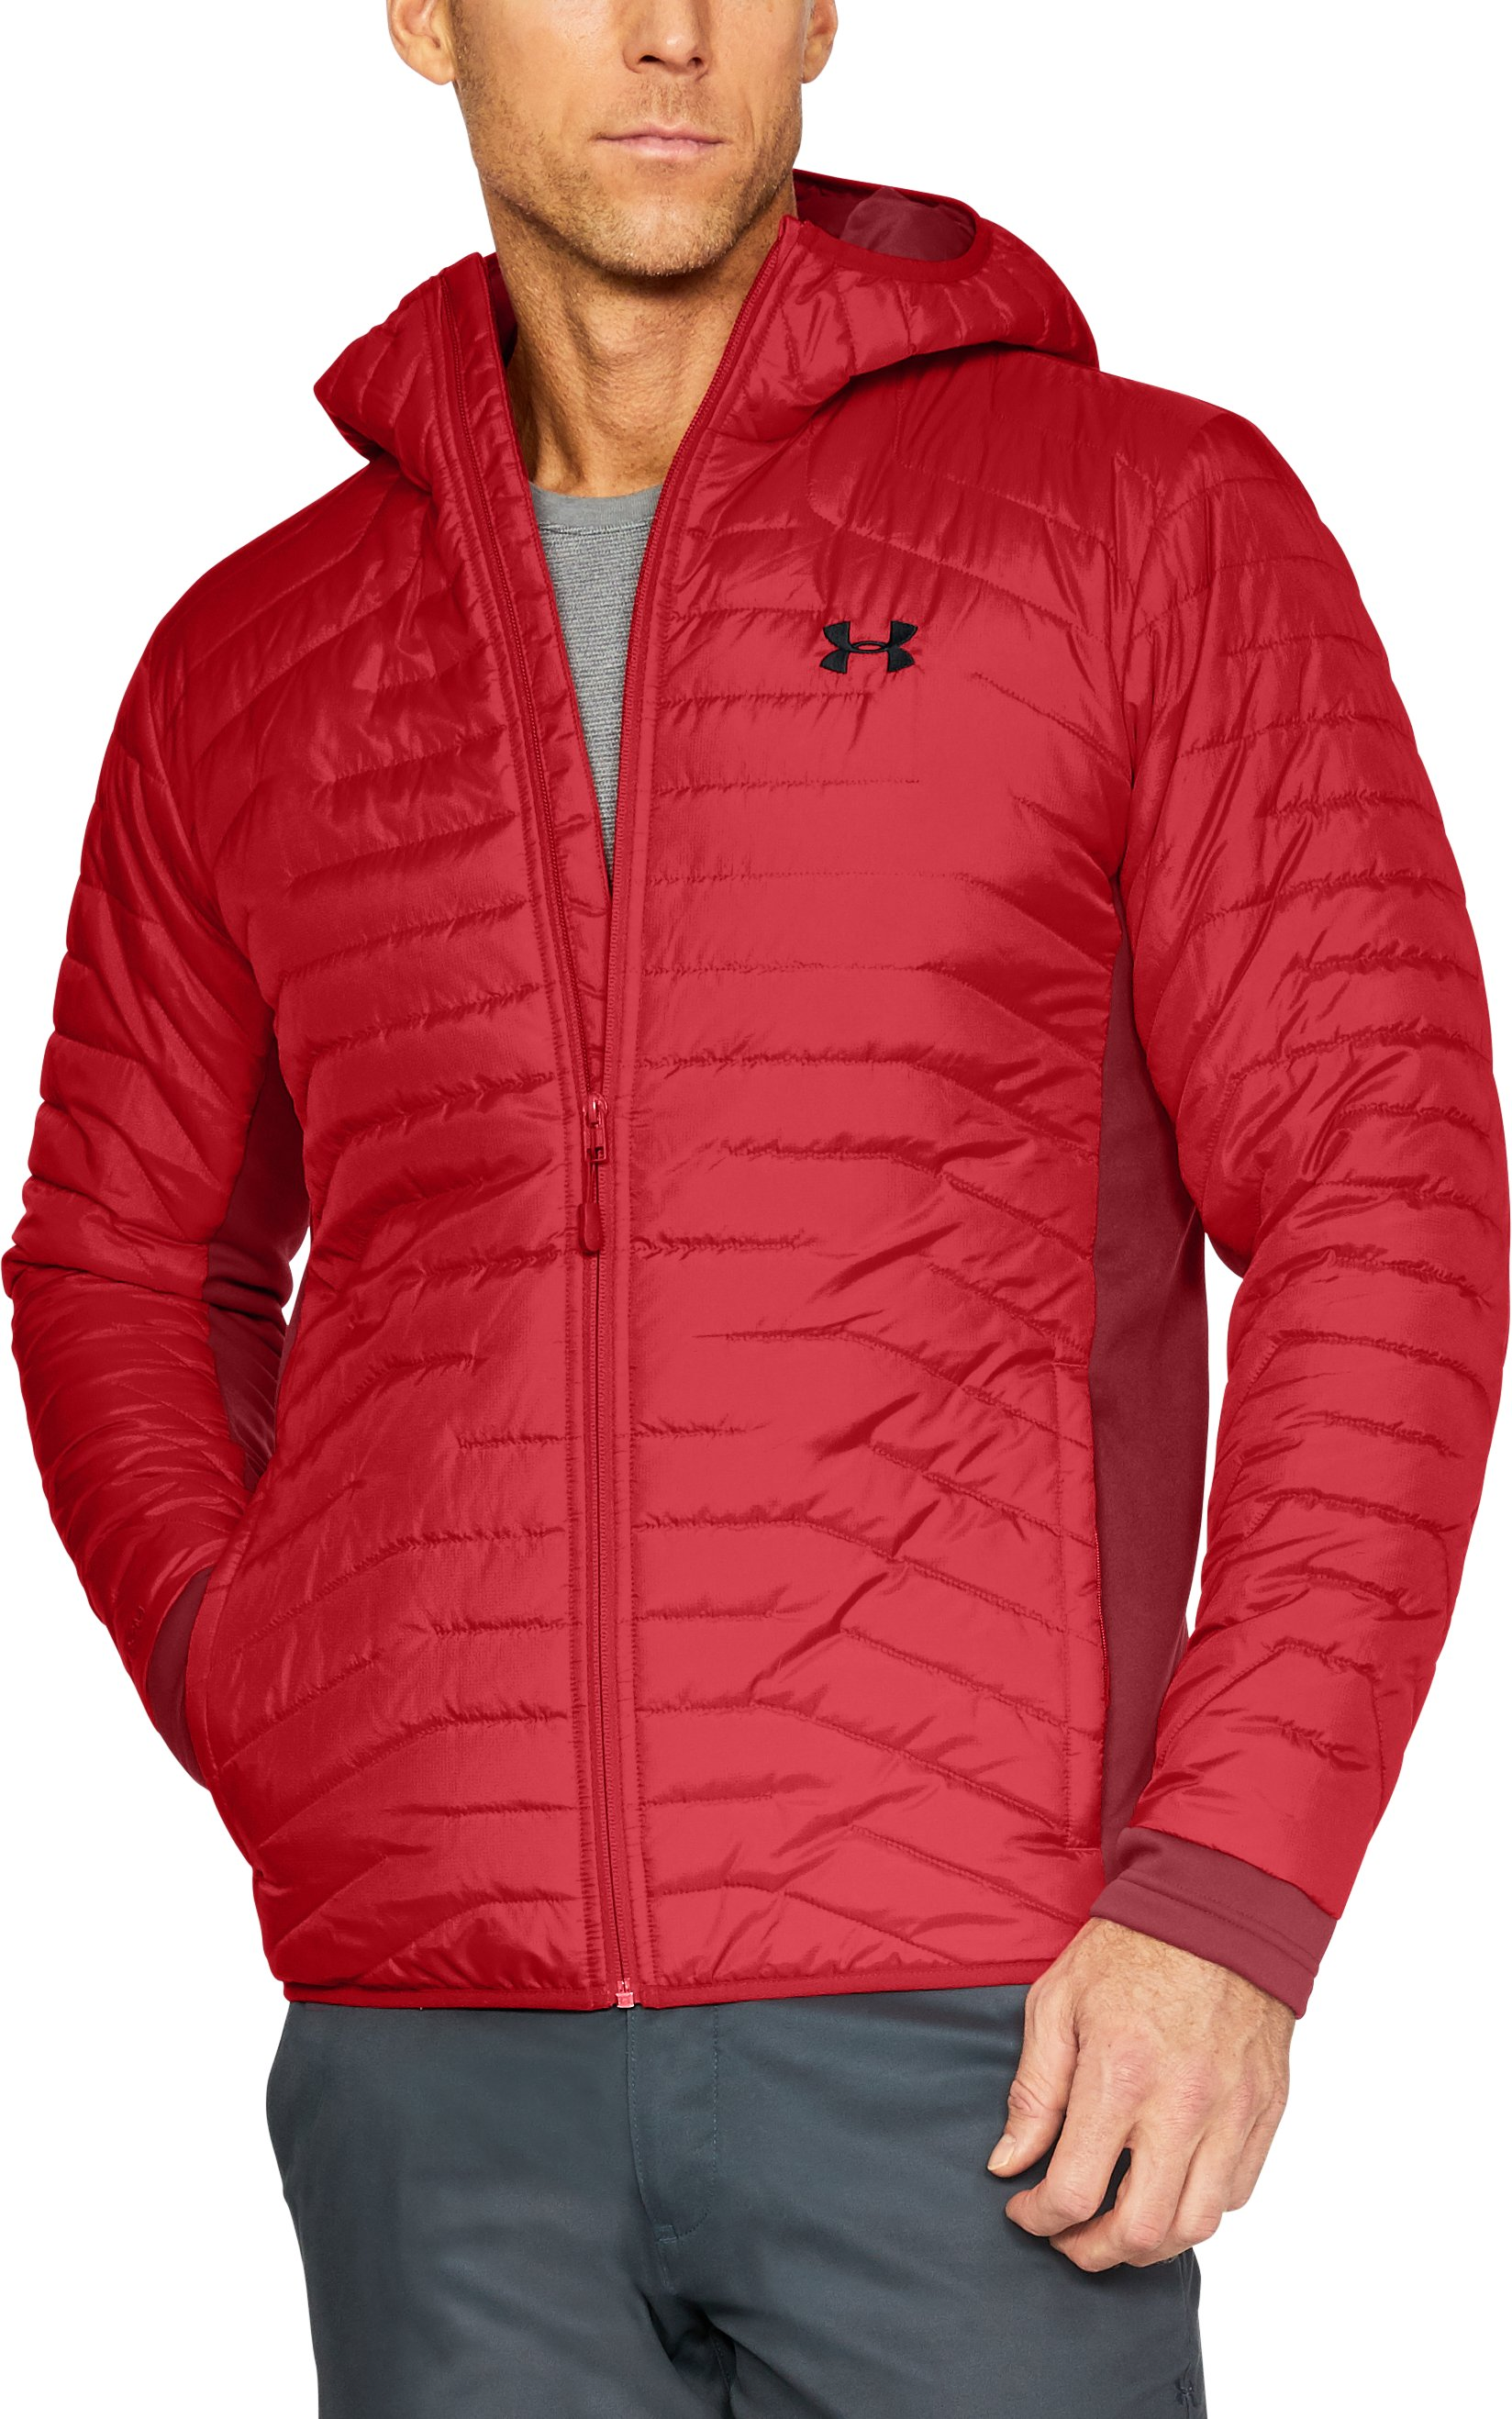 Men's ColdGear® Reactor Hybrid Jacket, Red